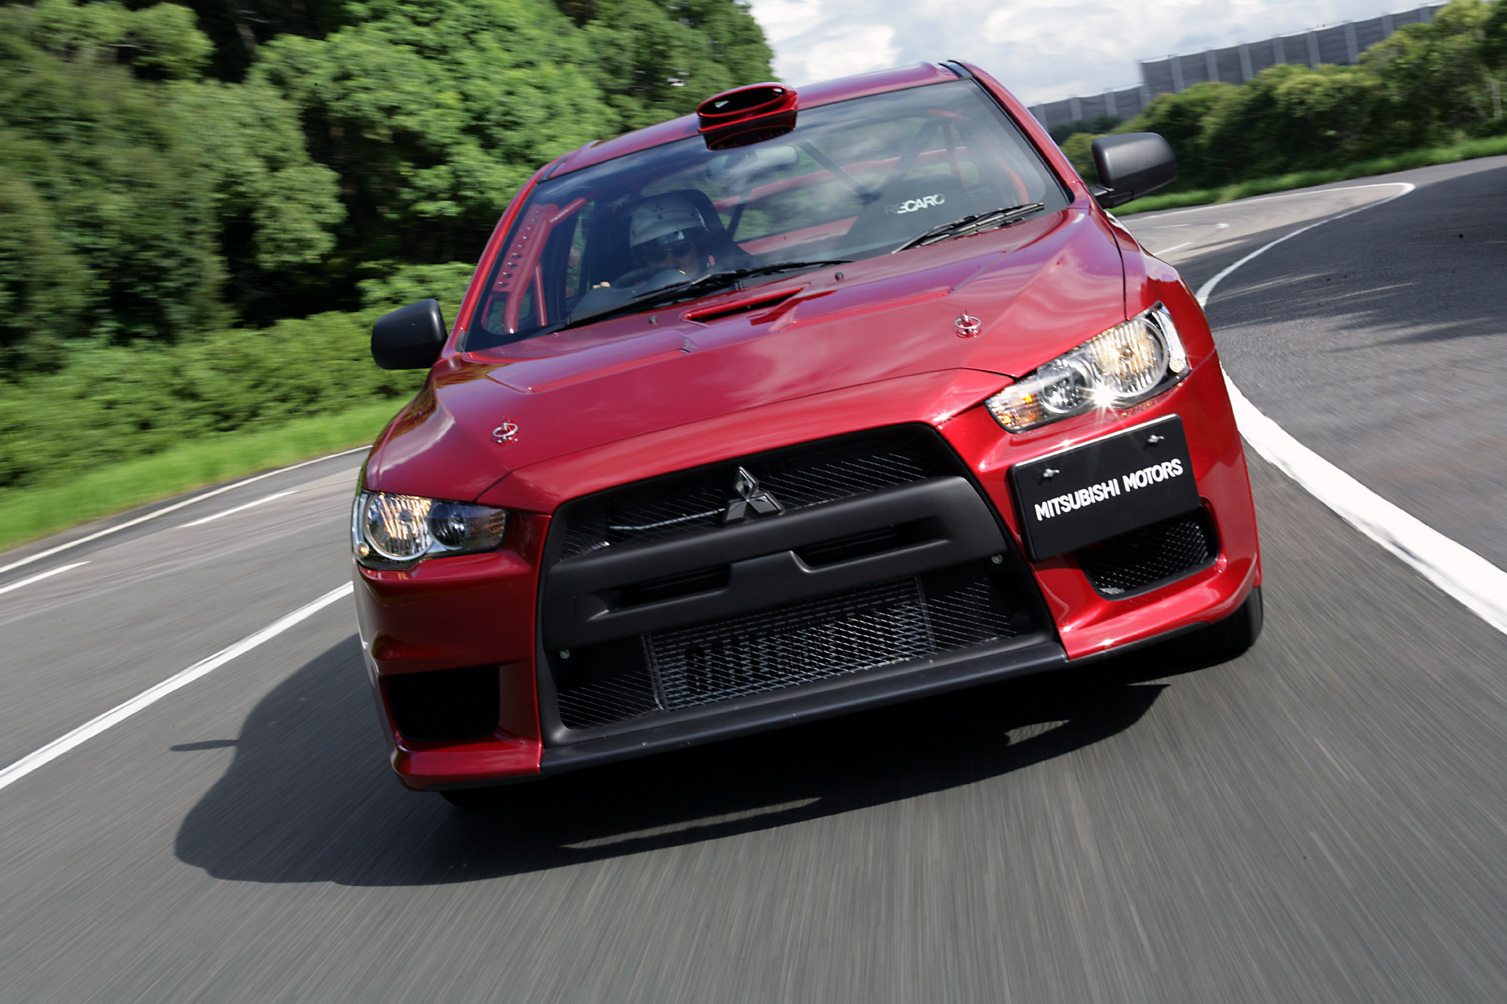 Mitsubishi Lancer Evolution X - version WRC Groupe N